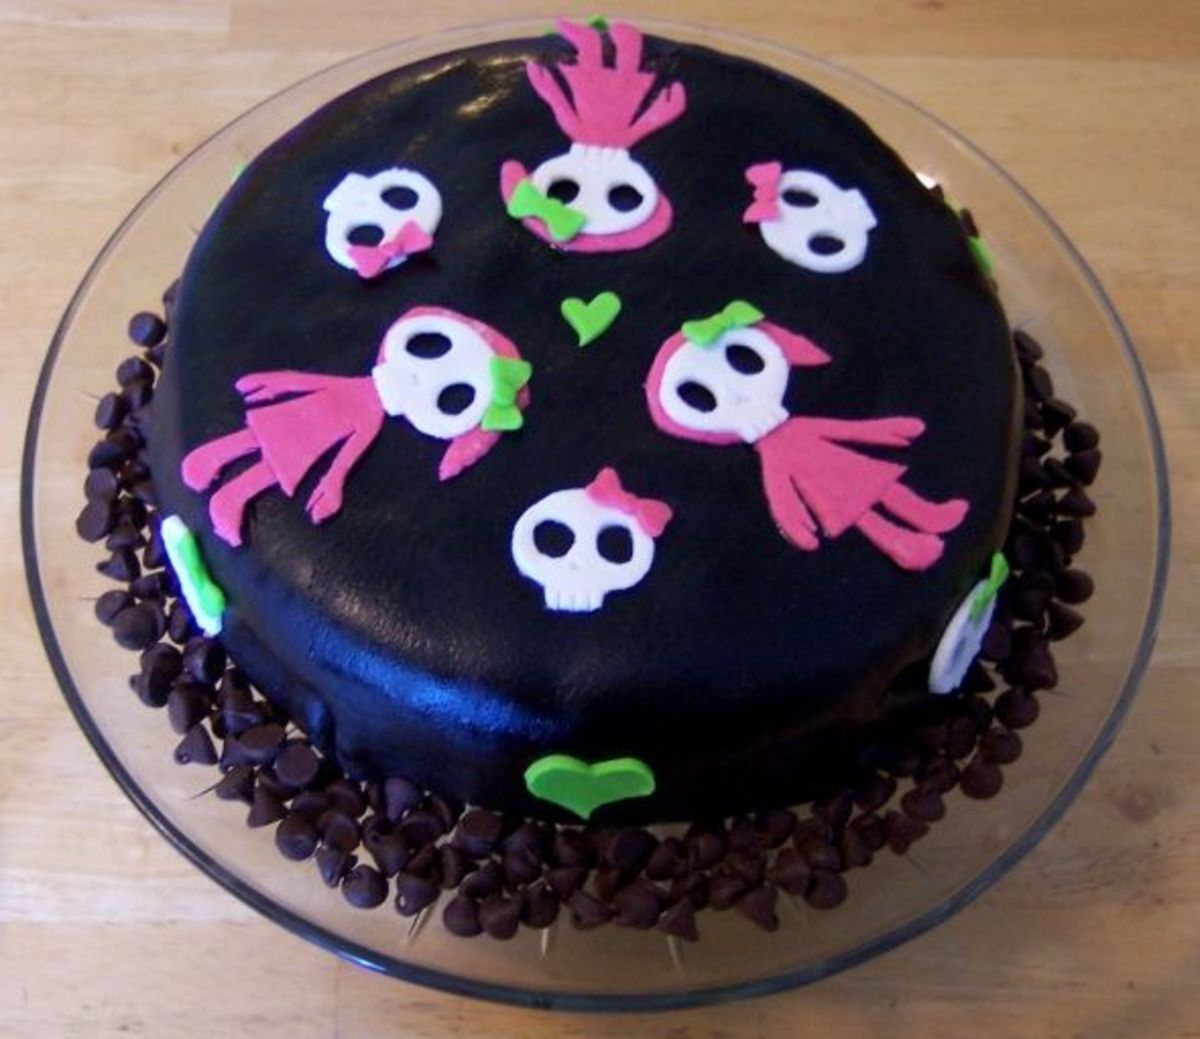 Cake decorated with cute skulls